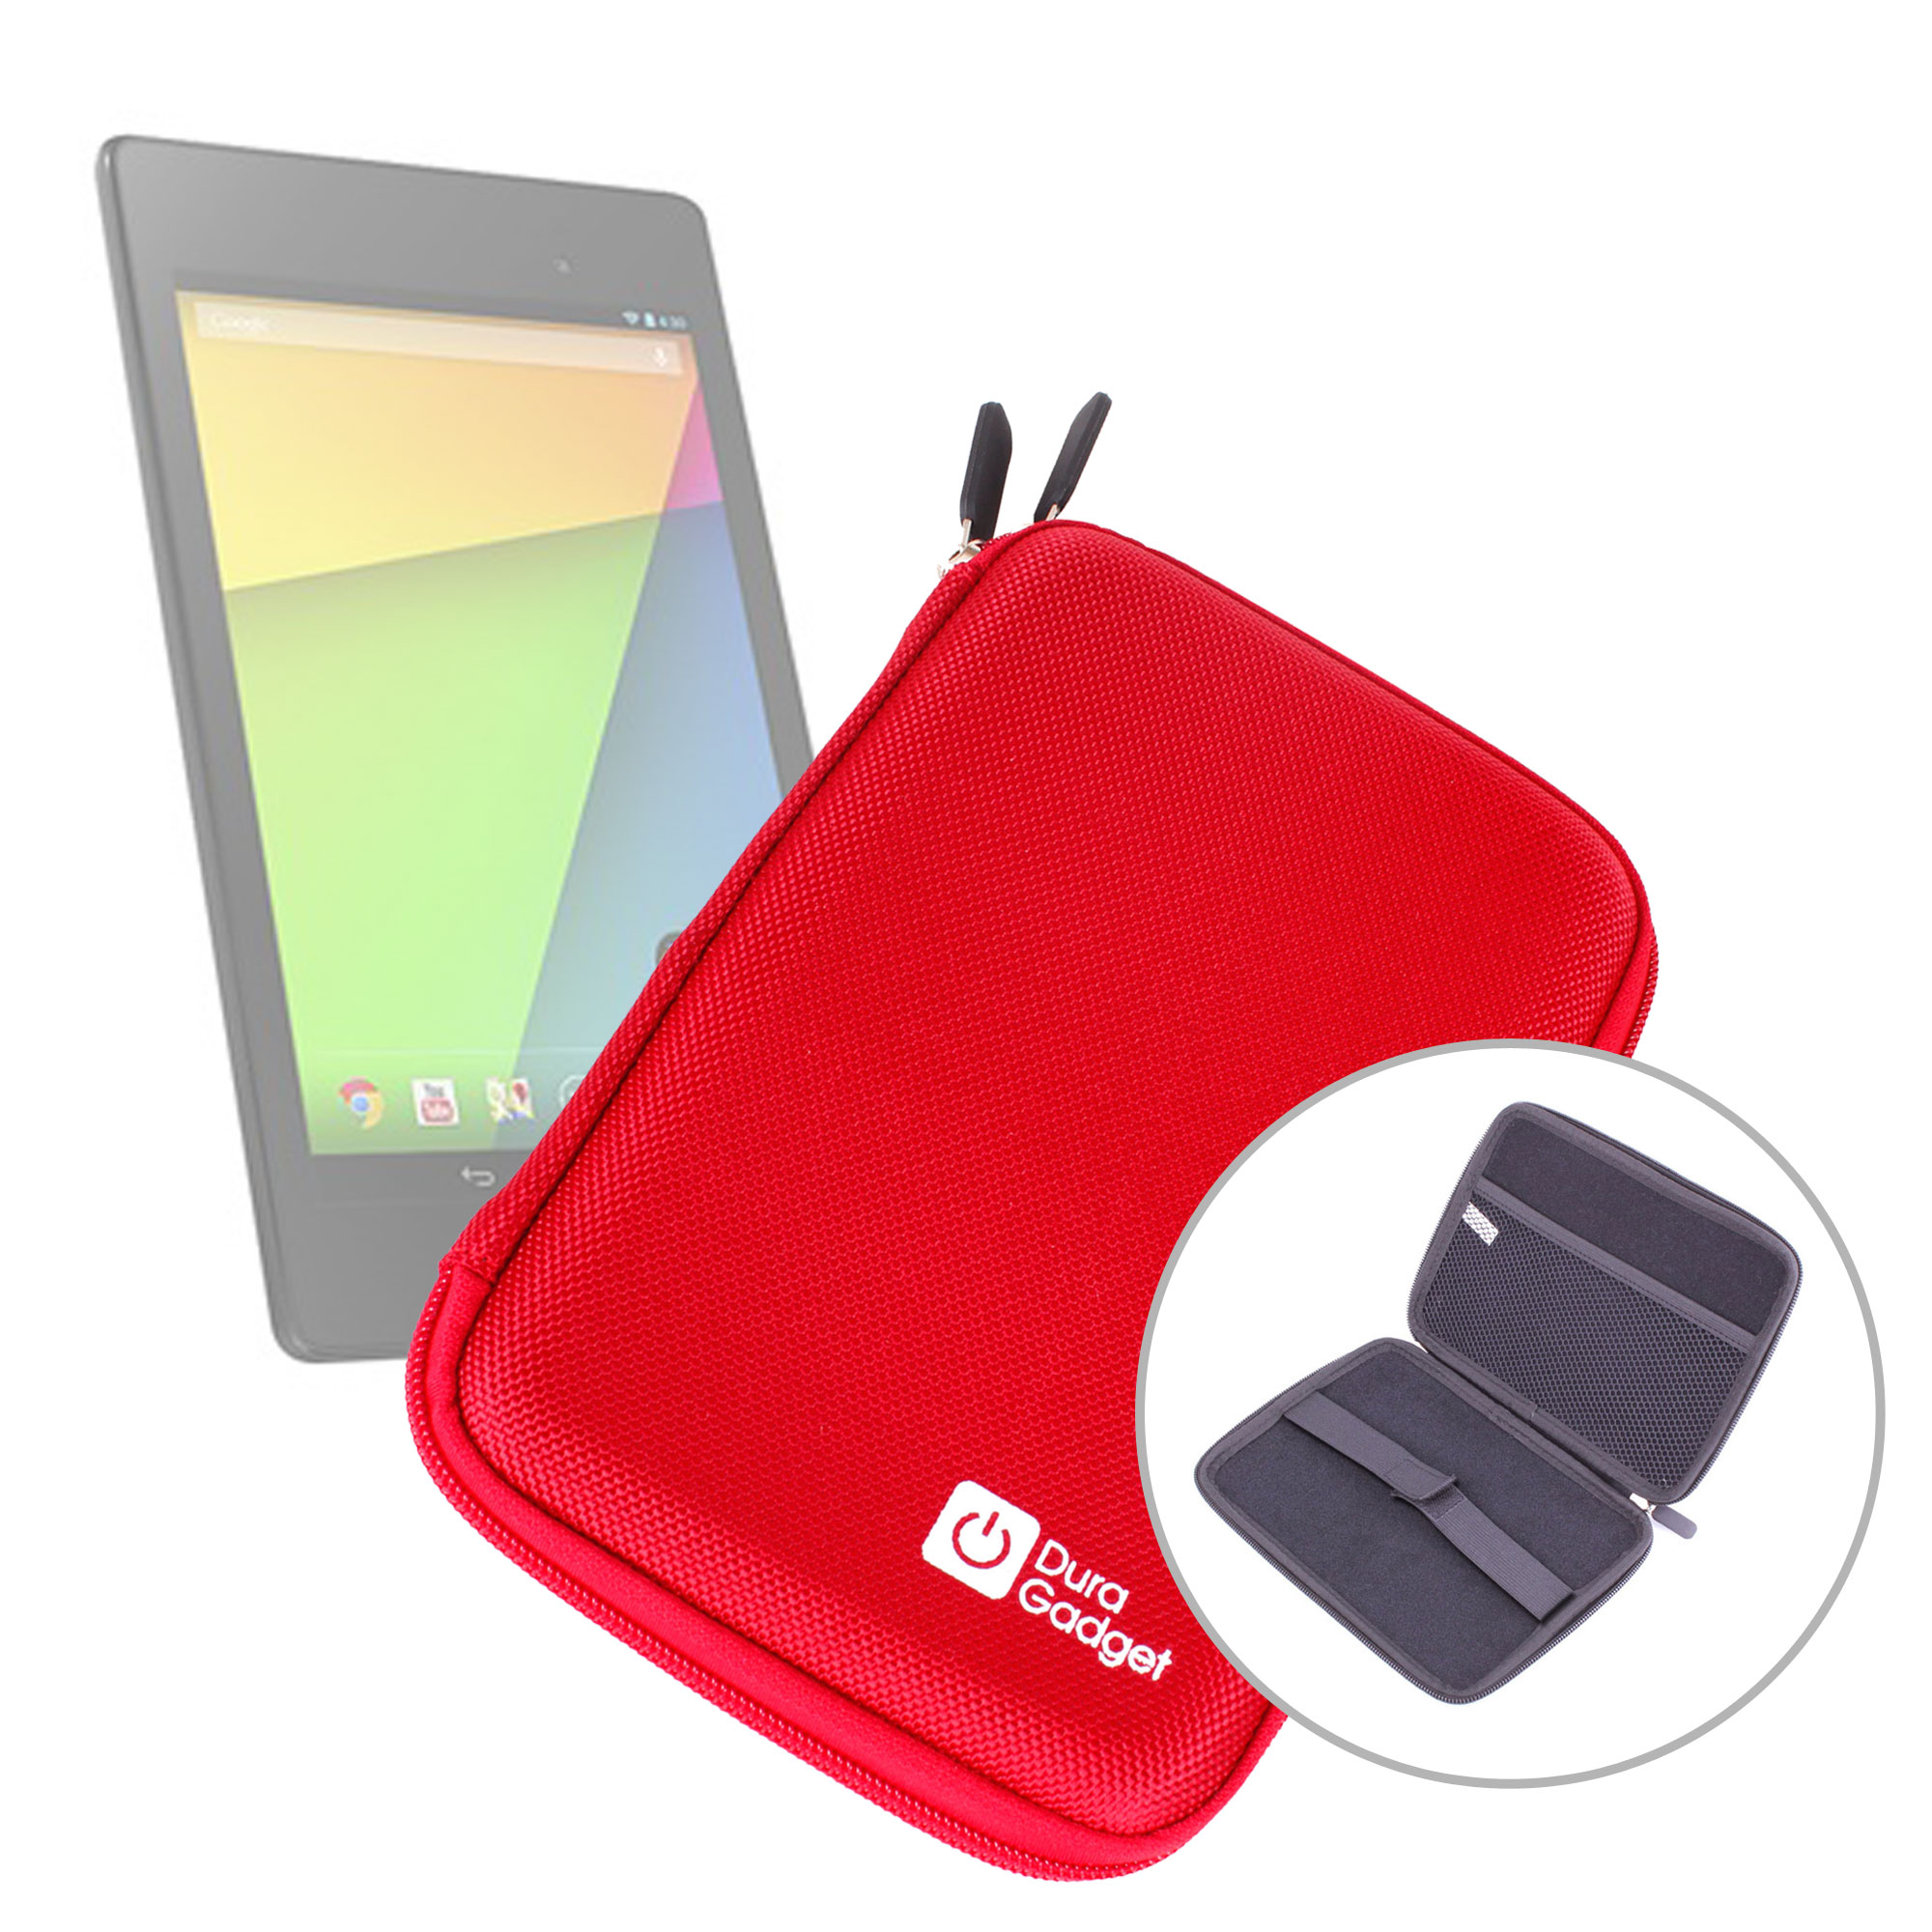 etui coque rigide couleur rouge pour tablette google nexus 7 2 7 ii d 39 asus ebay. Black Bedroom Furniture Sets. Home Design Ideas